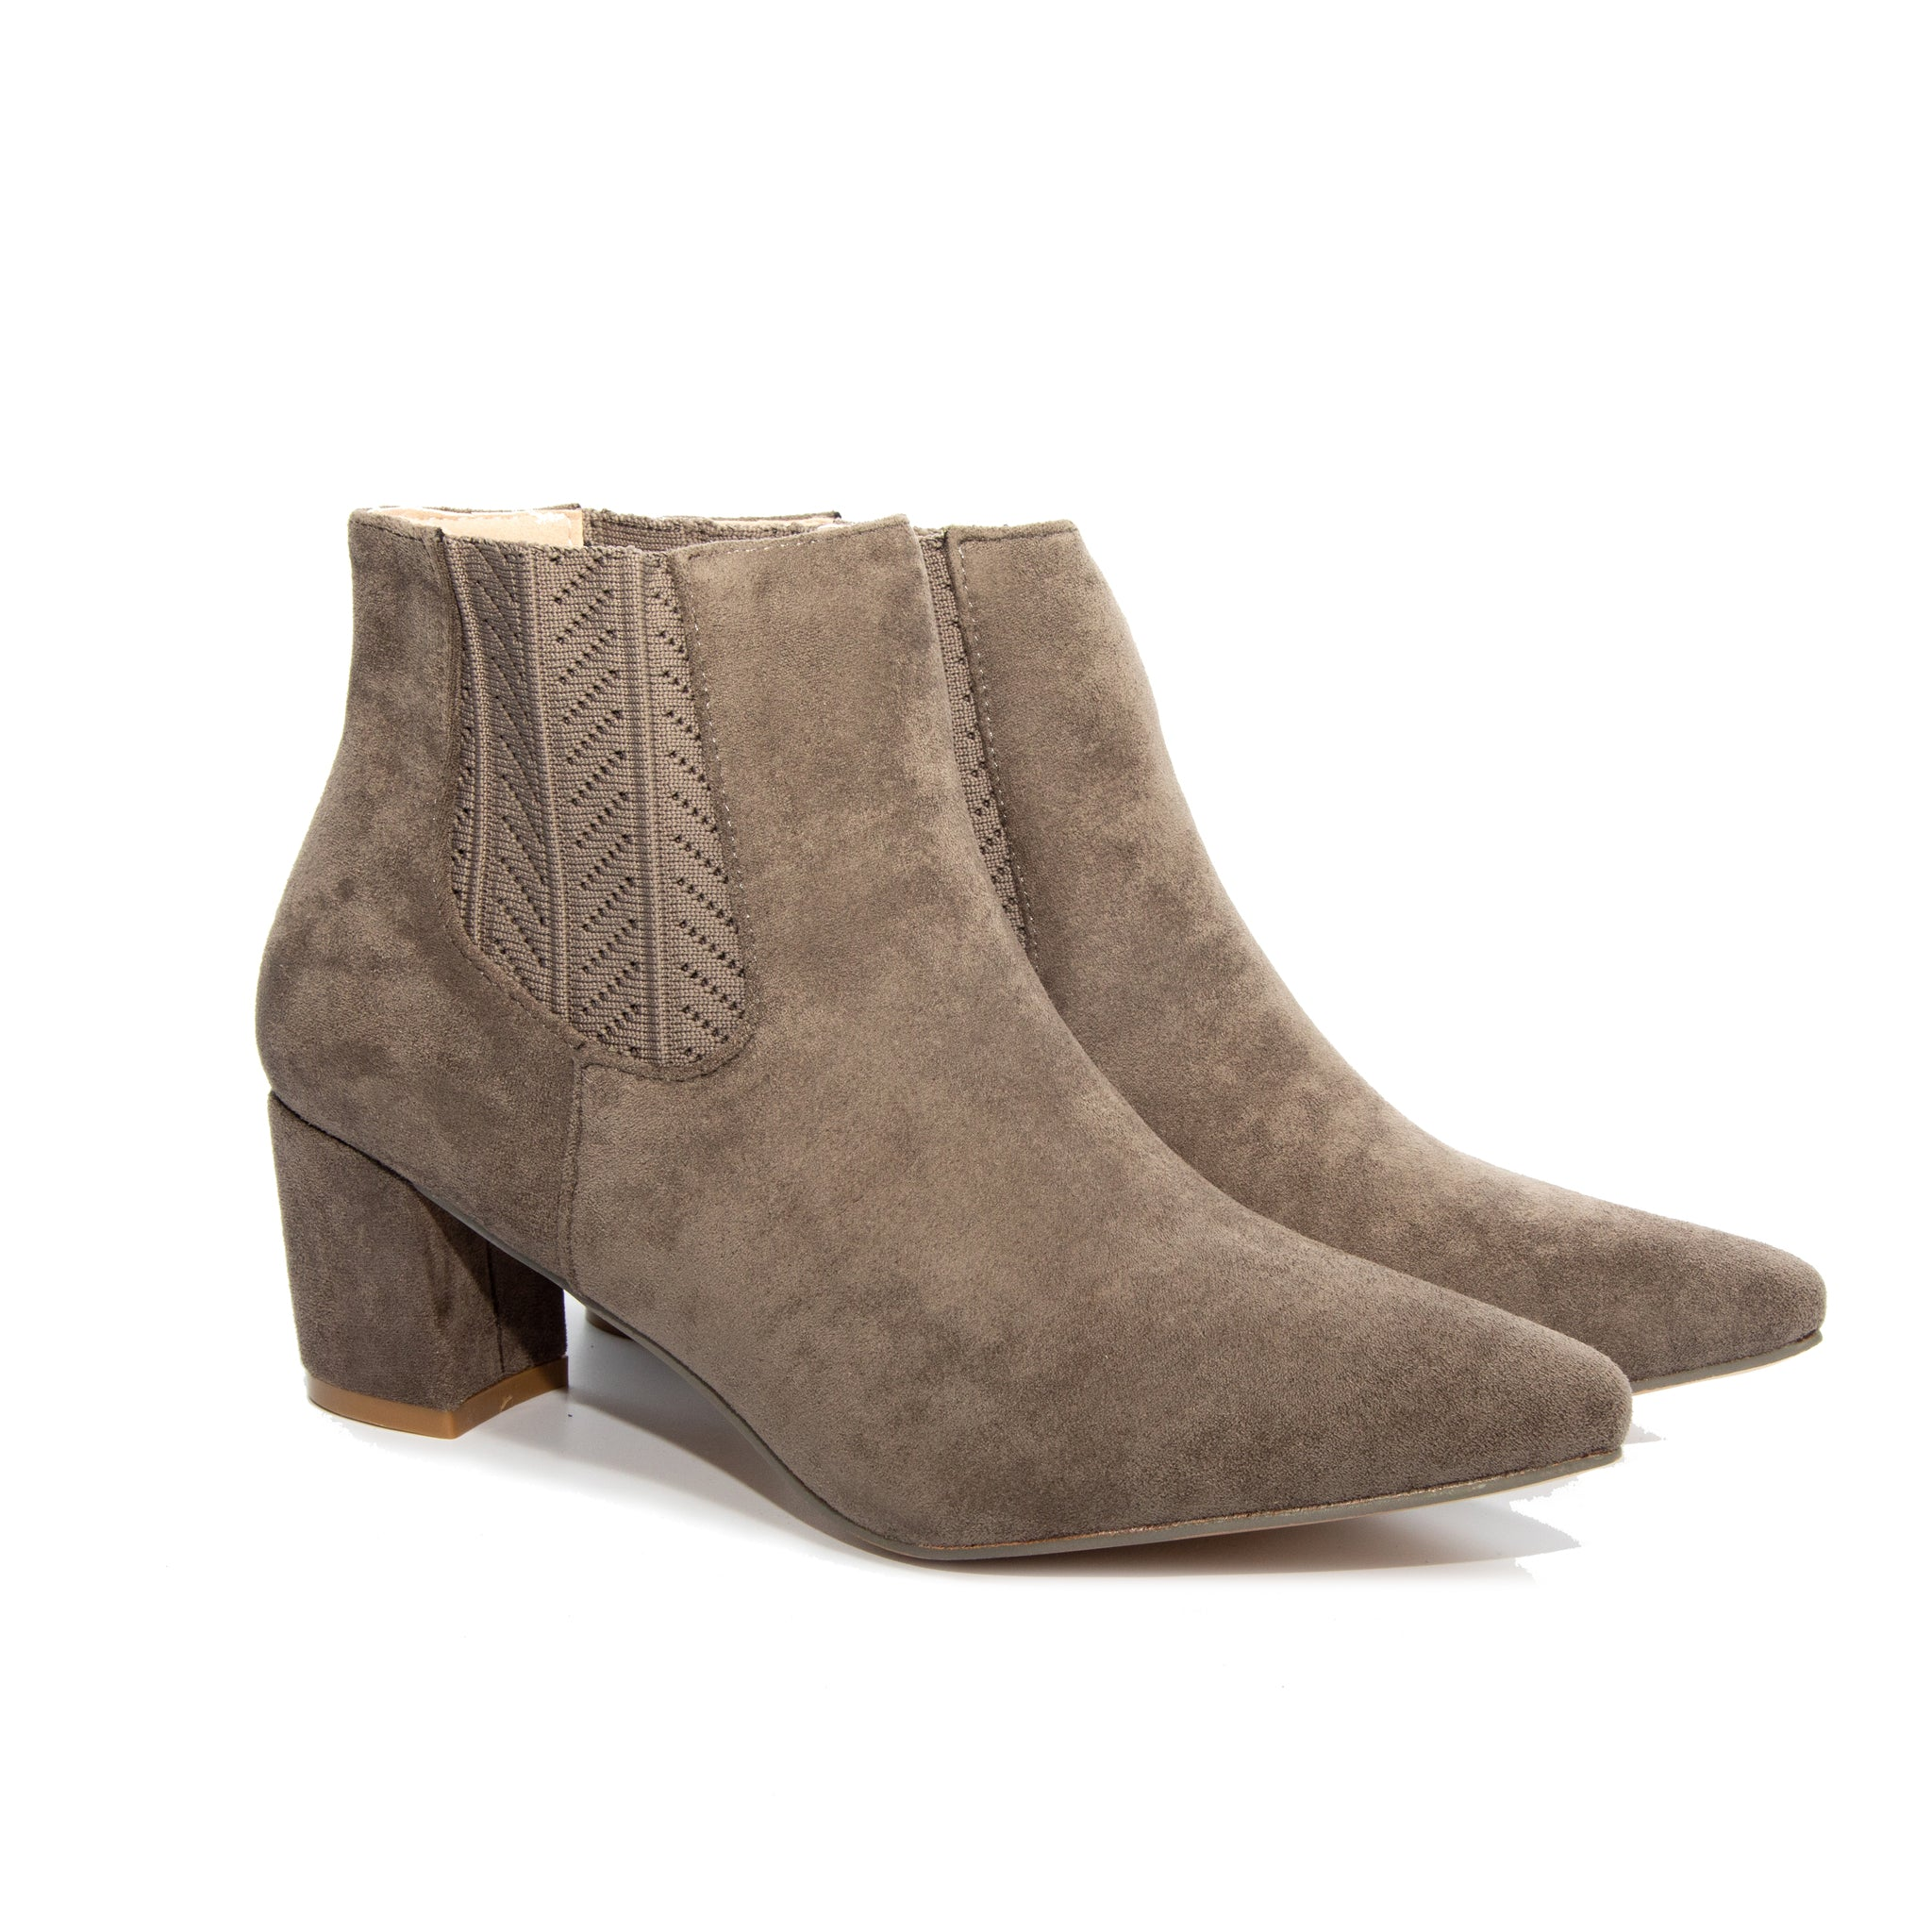 Chloe by Dolce Nome | Faux Suede Ankle Boots in Taupe (pair view)